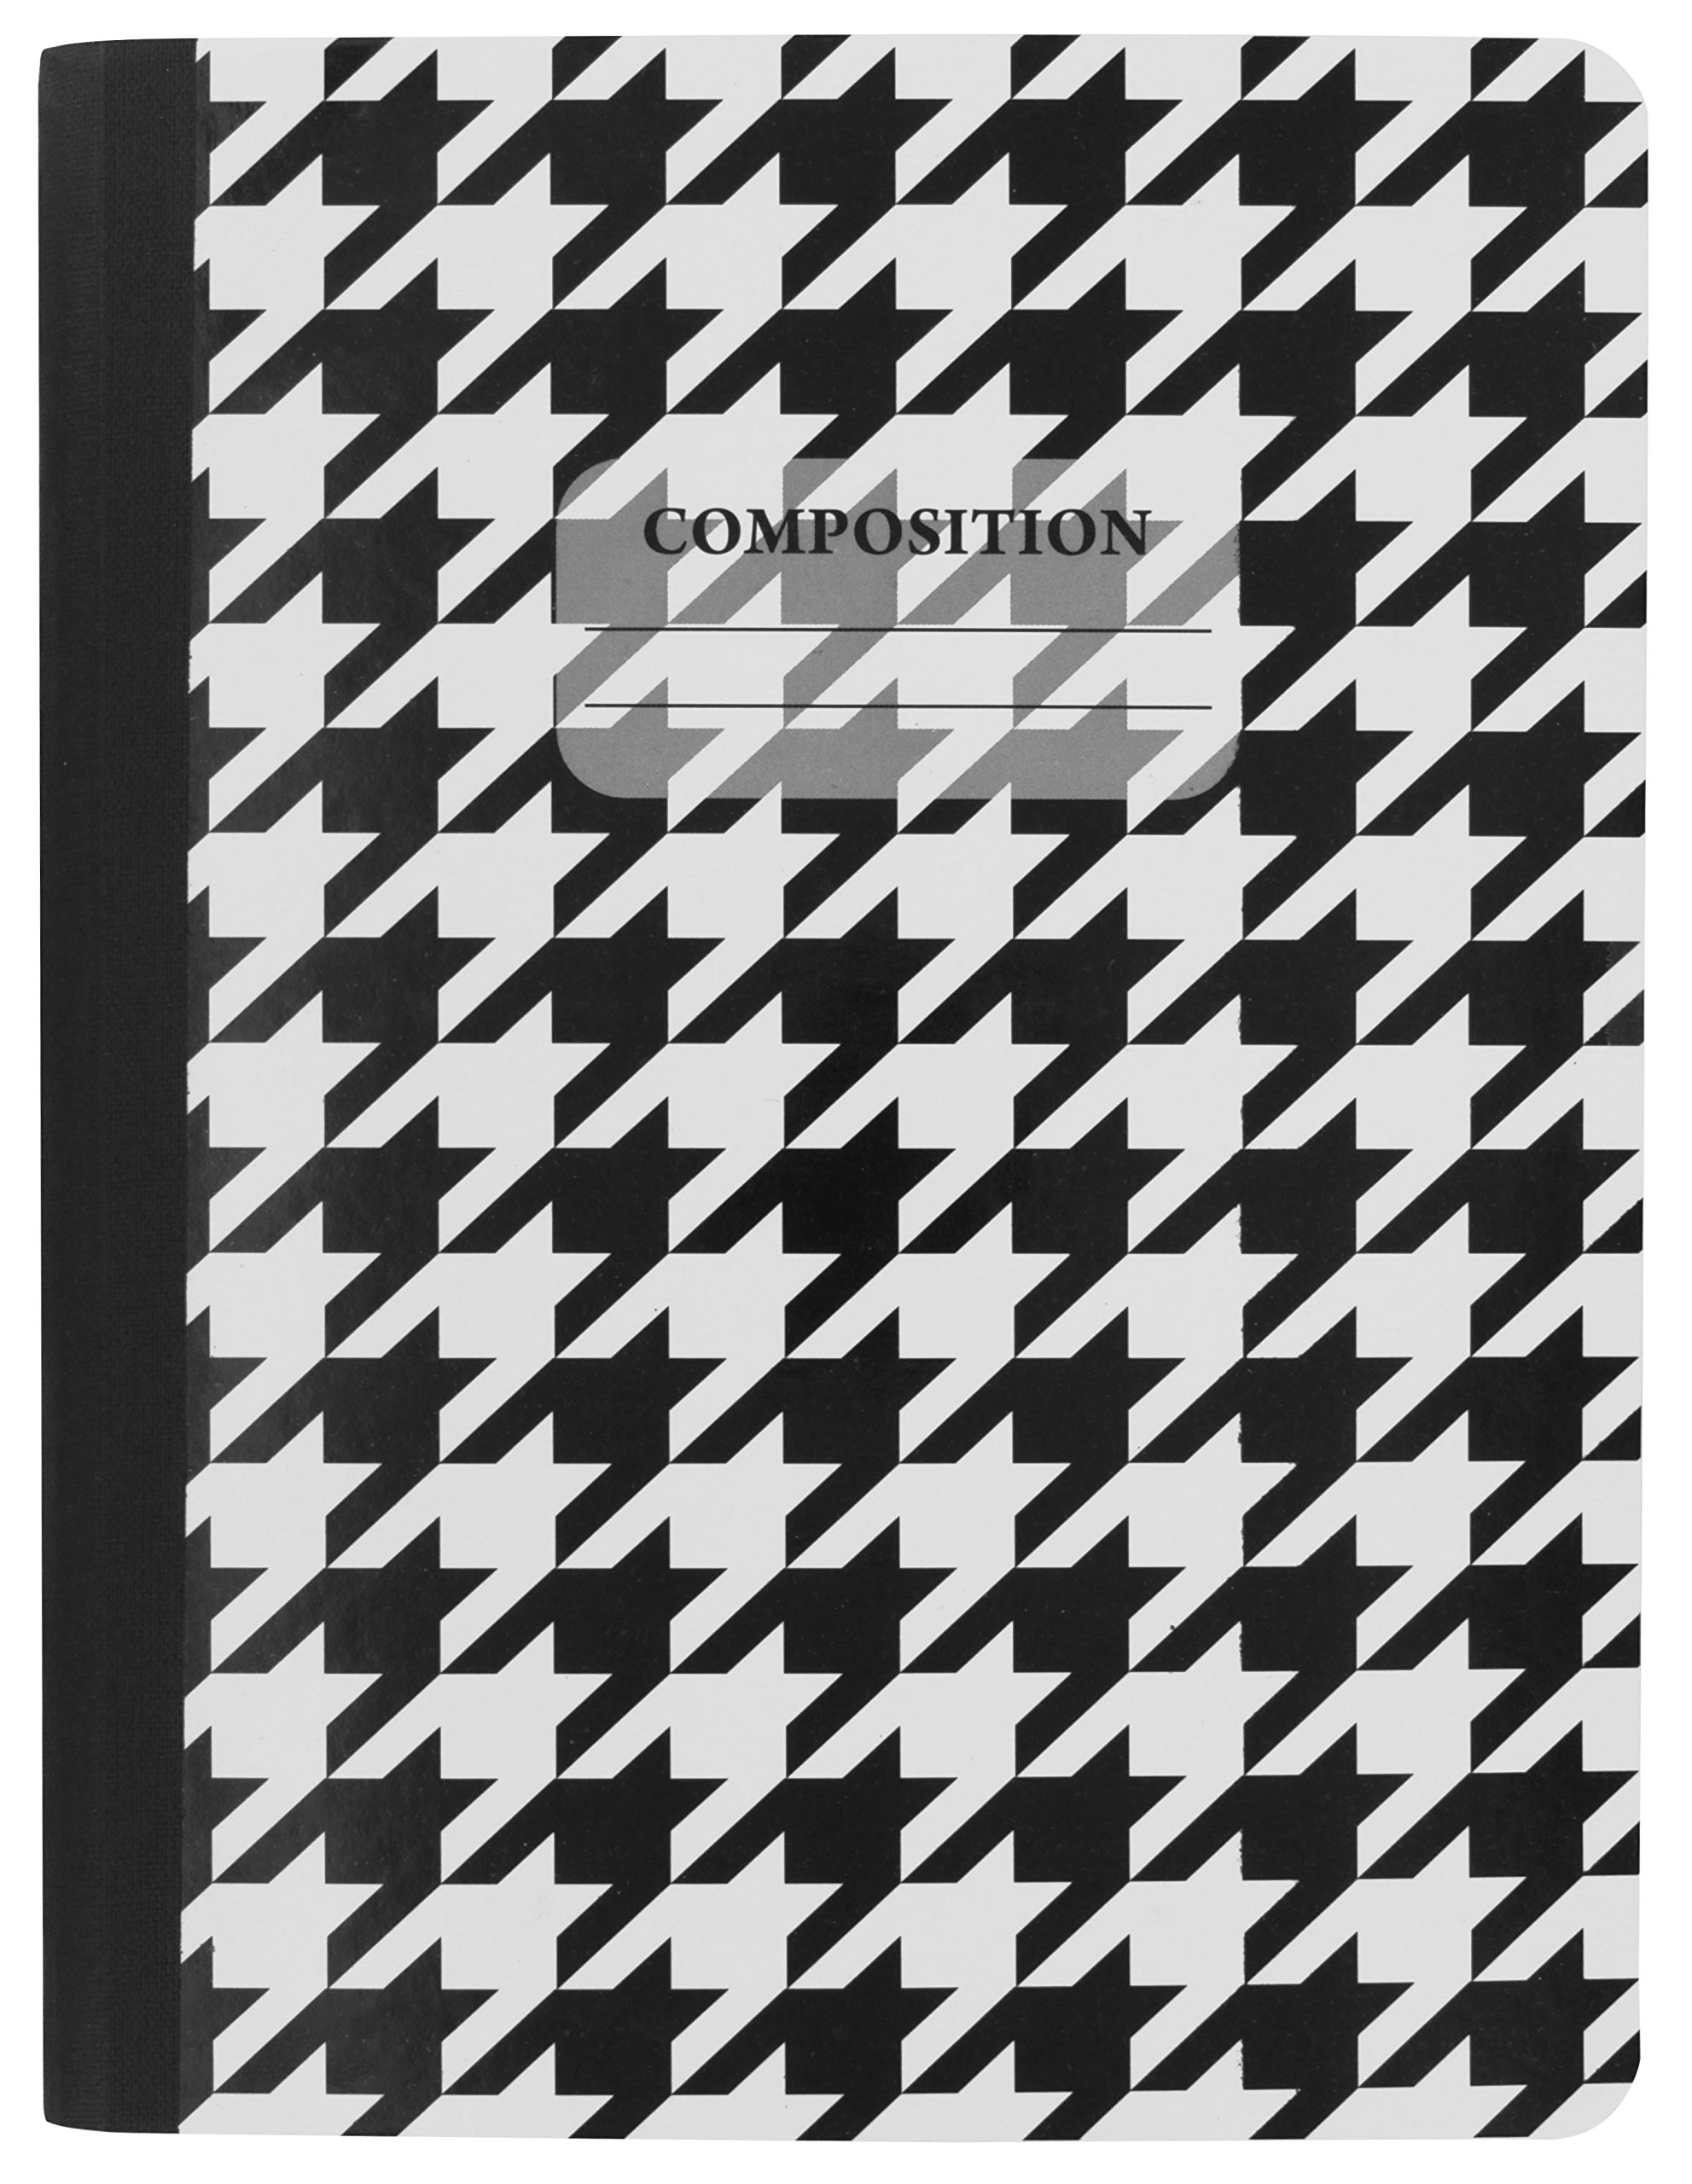 Emraw Black & White 4 Fashion Styles Cover Composition Book with 100 Sheets of Wide Ruled White Paper - Set Includes All Style Covers (4 Pack) by Emraw (Image #2)